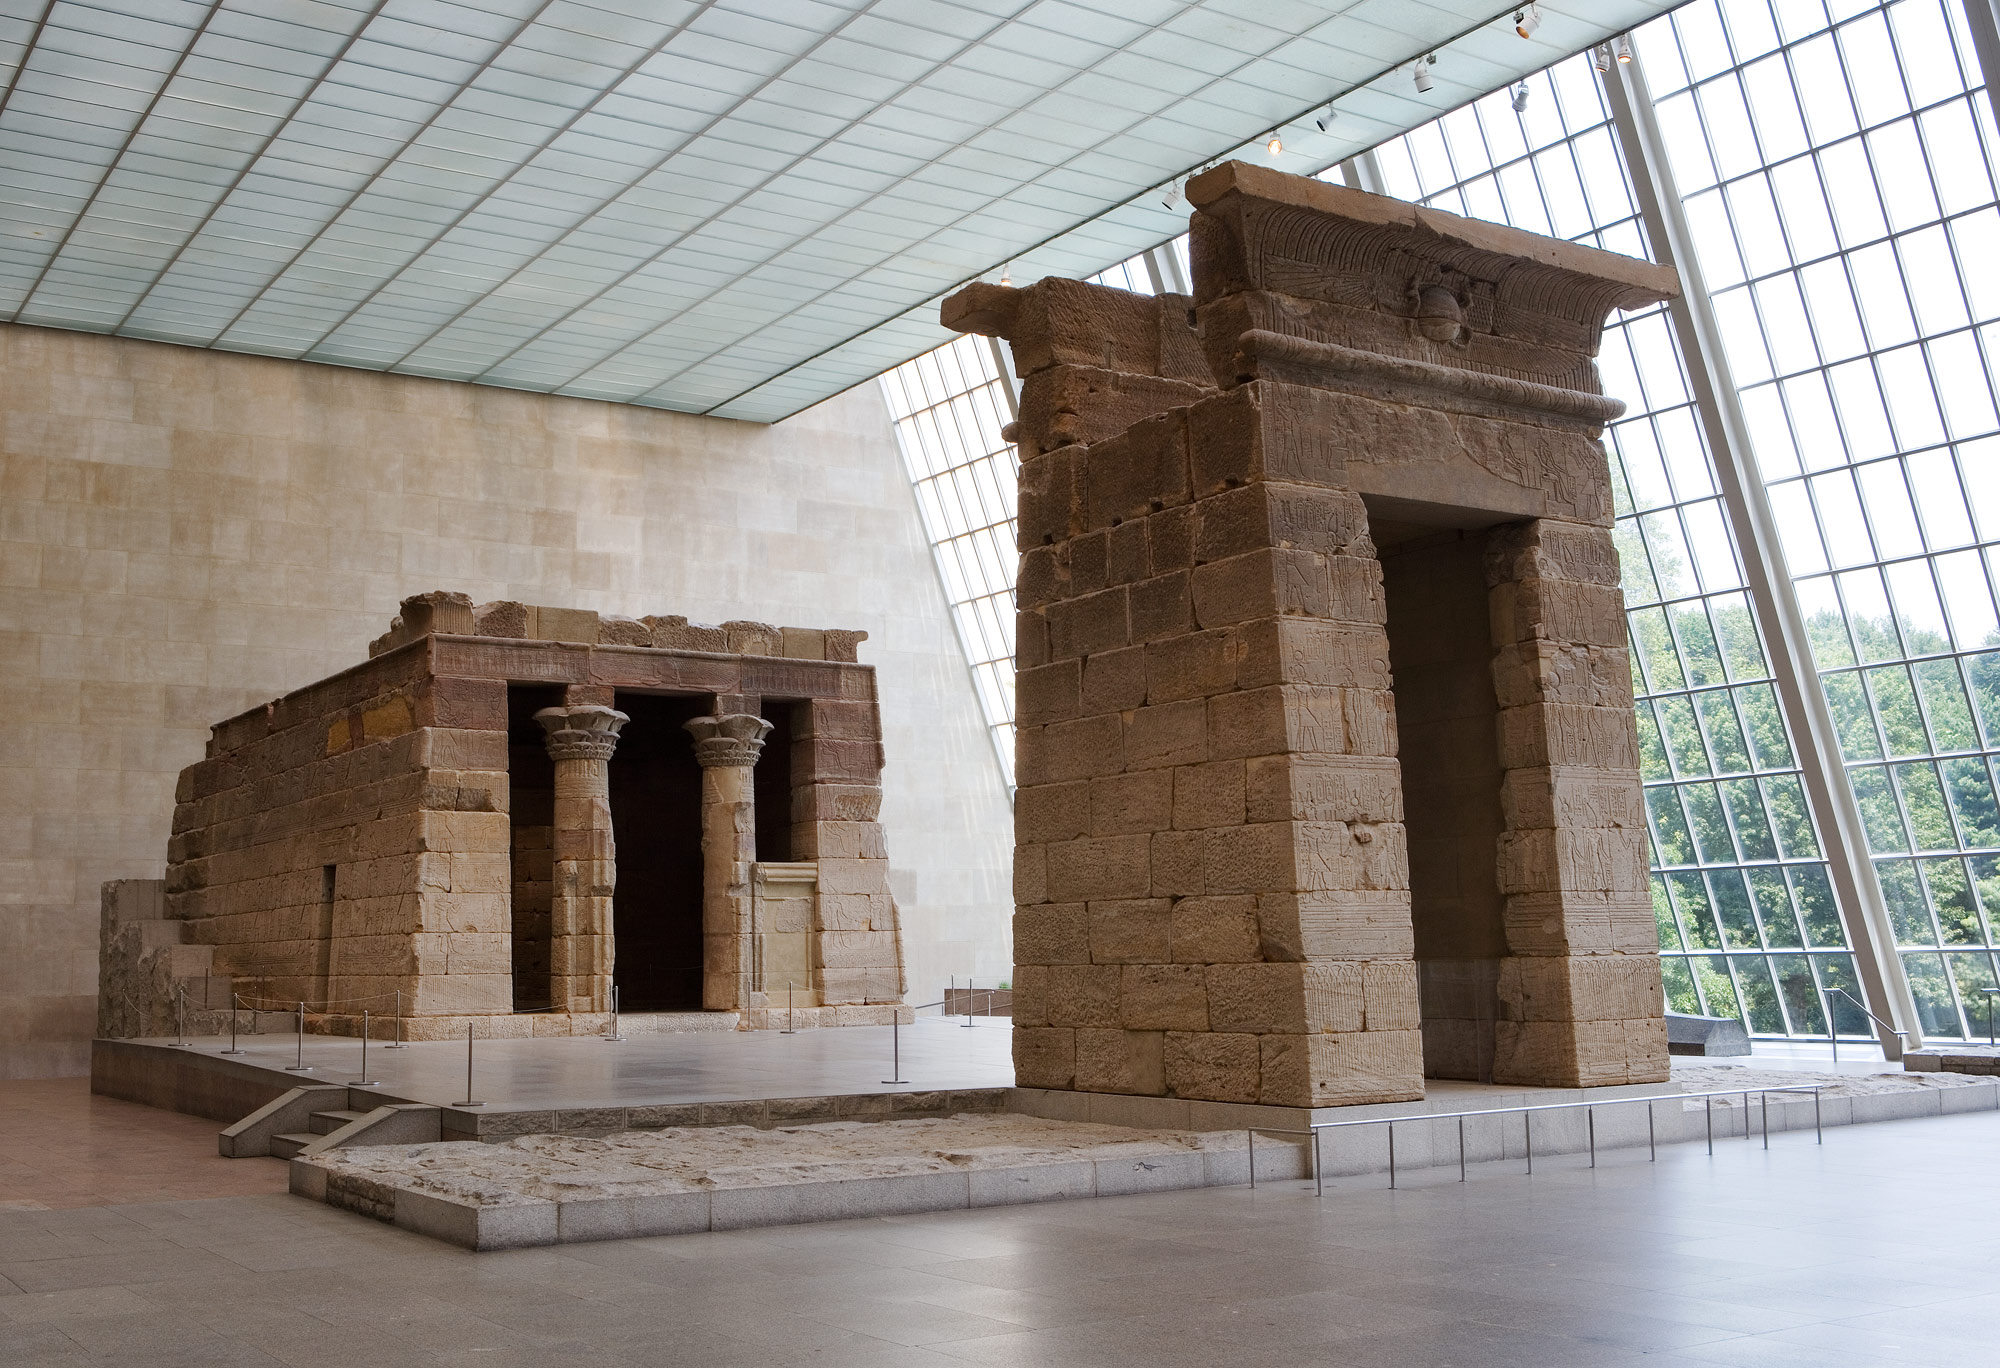 r essay heilbrunn timeline of art history the the temple of dendur